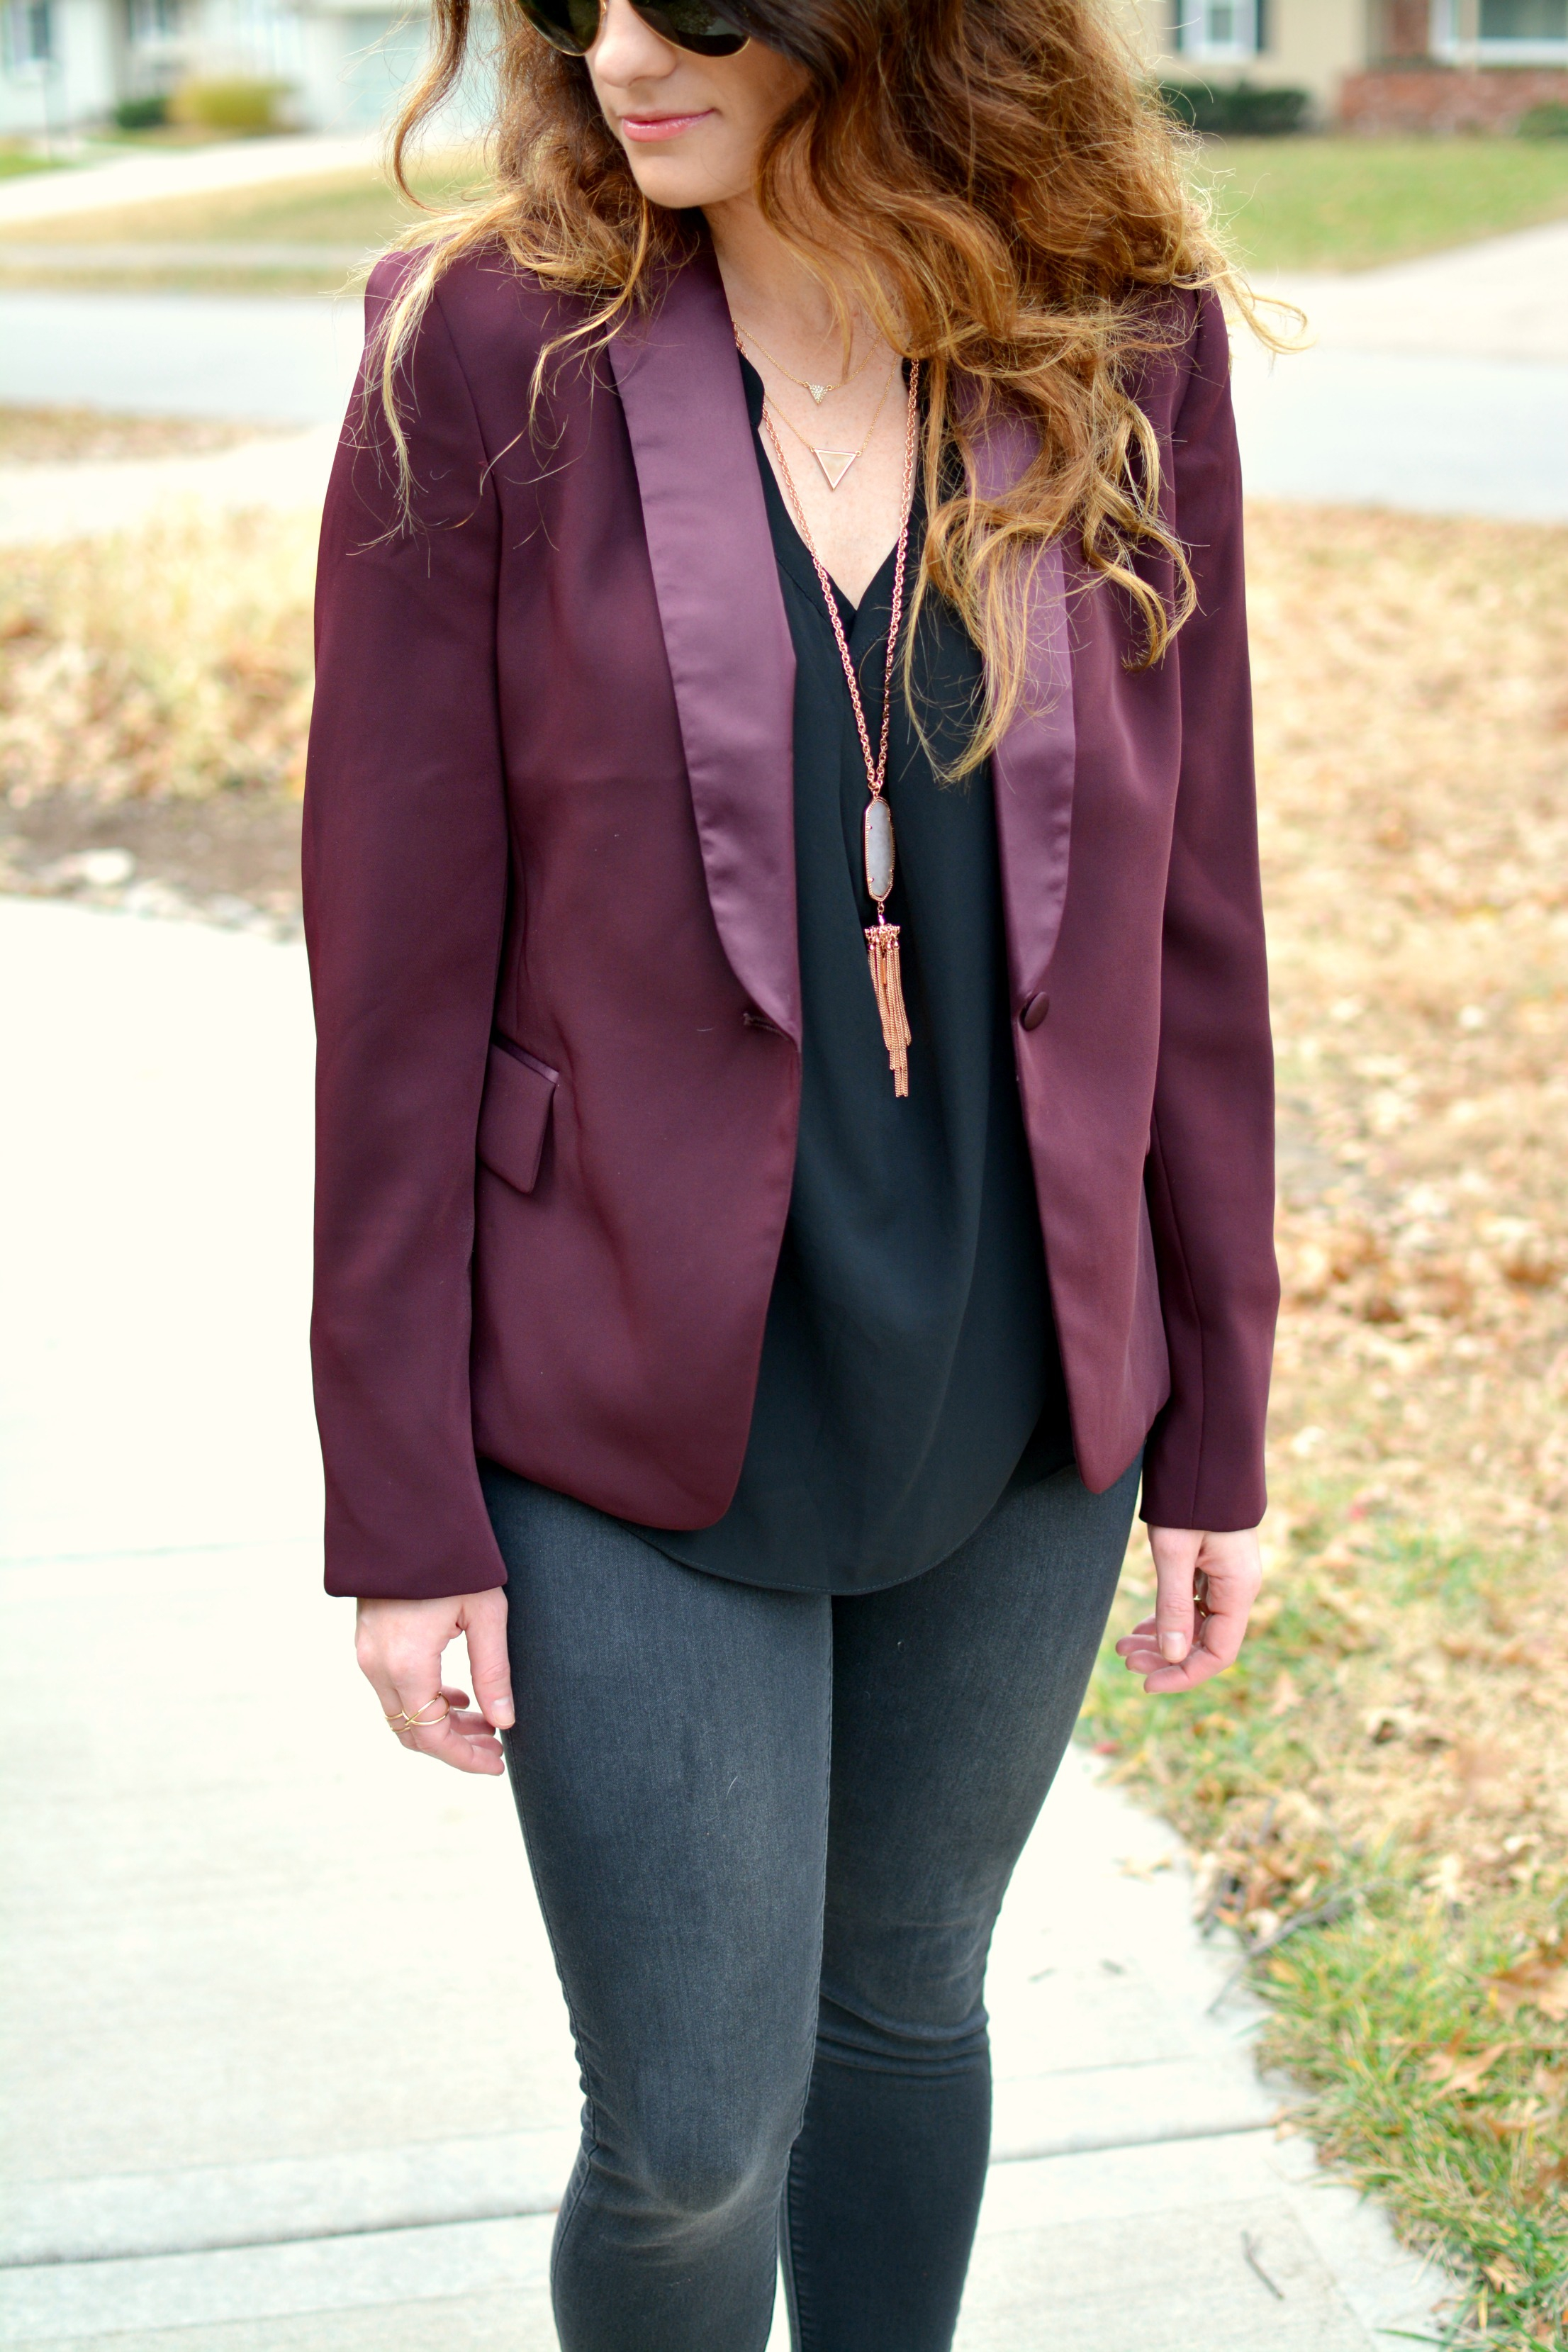 Ashley from LSR in a burgundy blazer and black denim